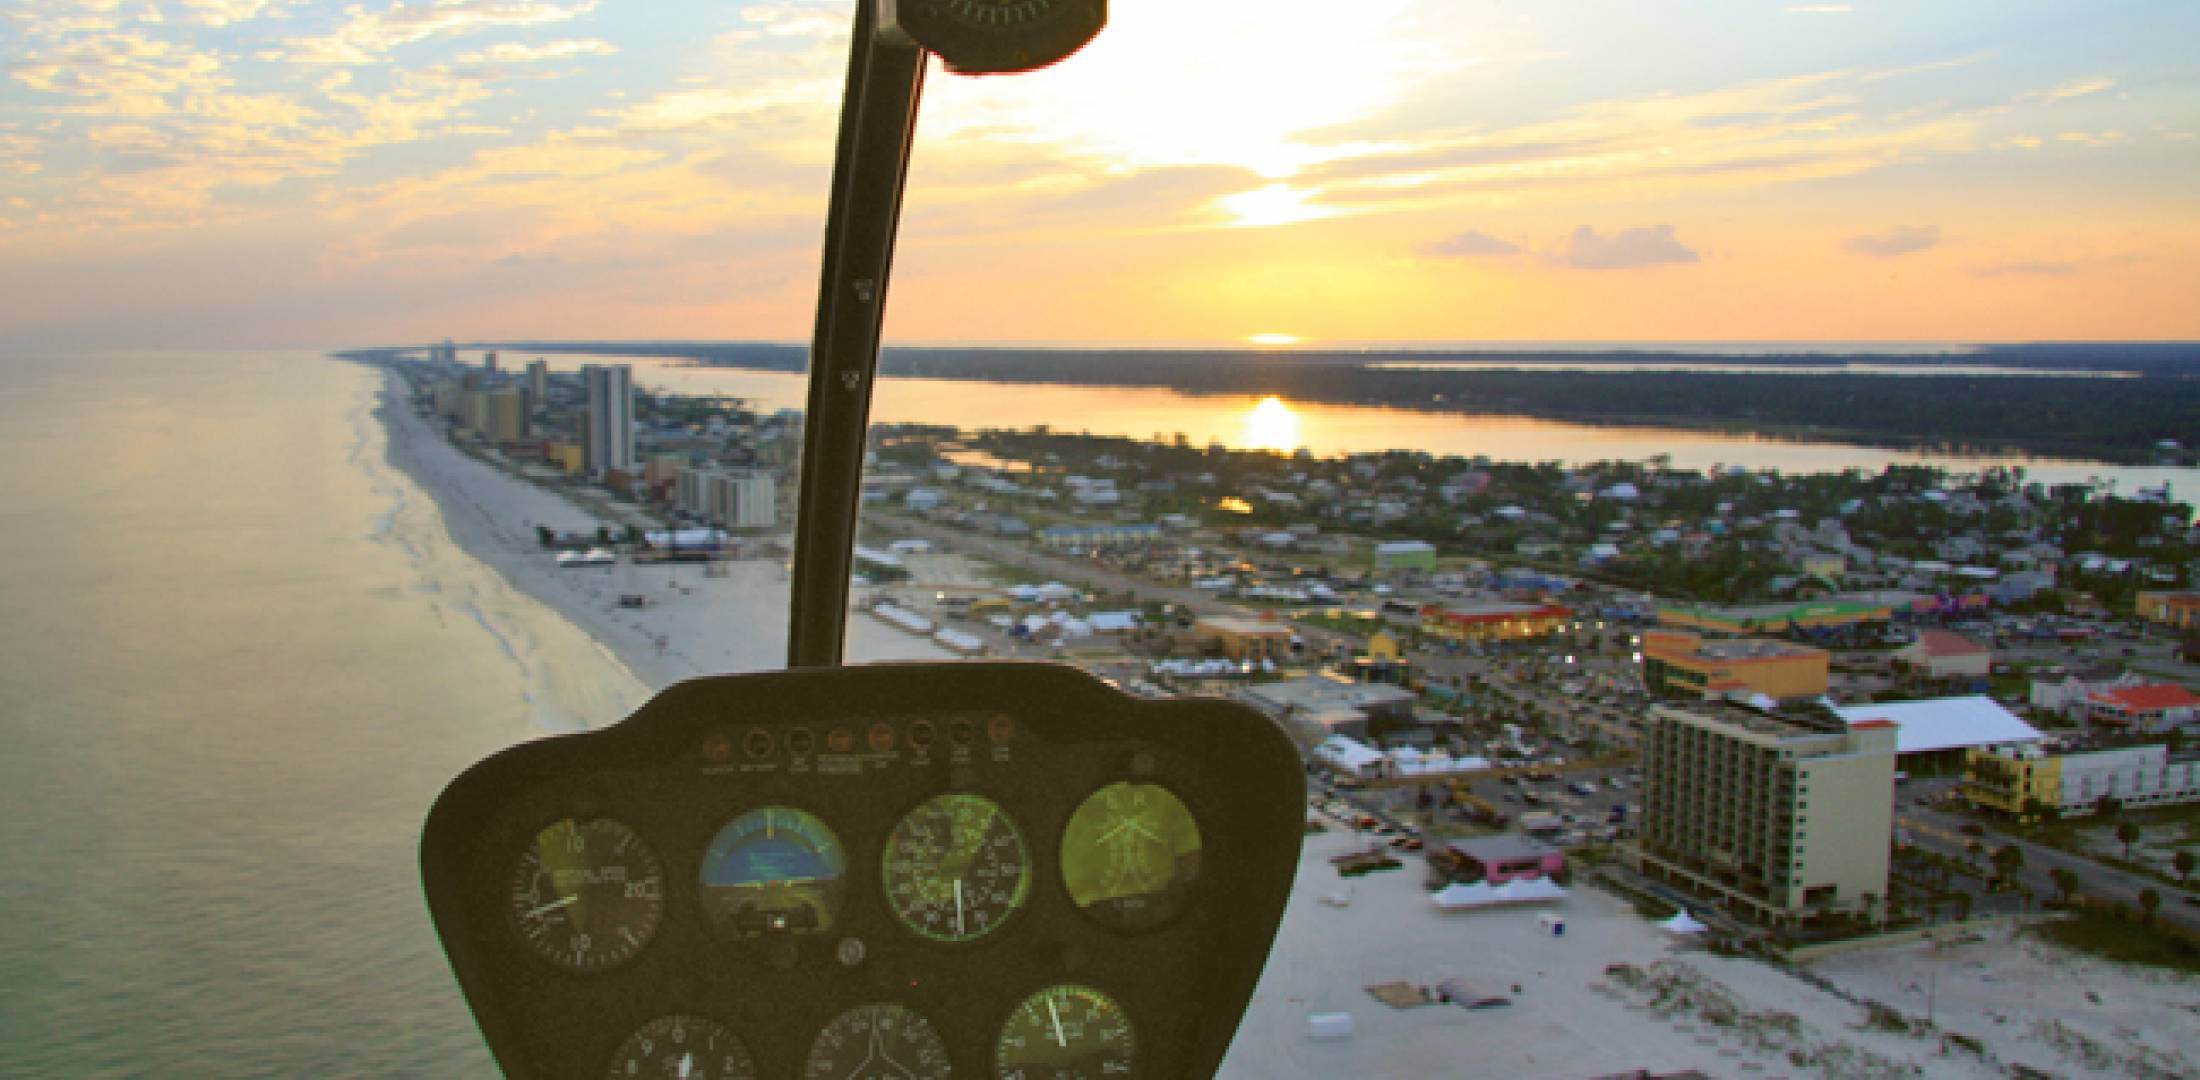 Georgia-based Oasis Aviation flies an R44 from Orange Beach, Ala., on sightseeing flights over the Gulf Coast. Public-sector flights fill the remaining slots.